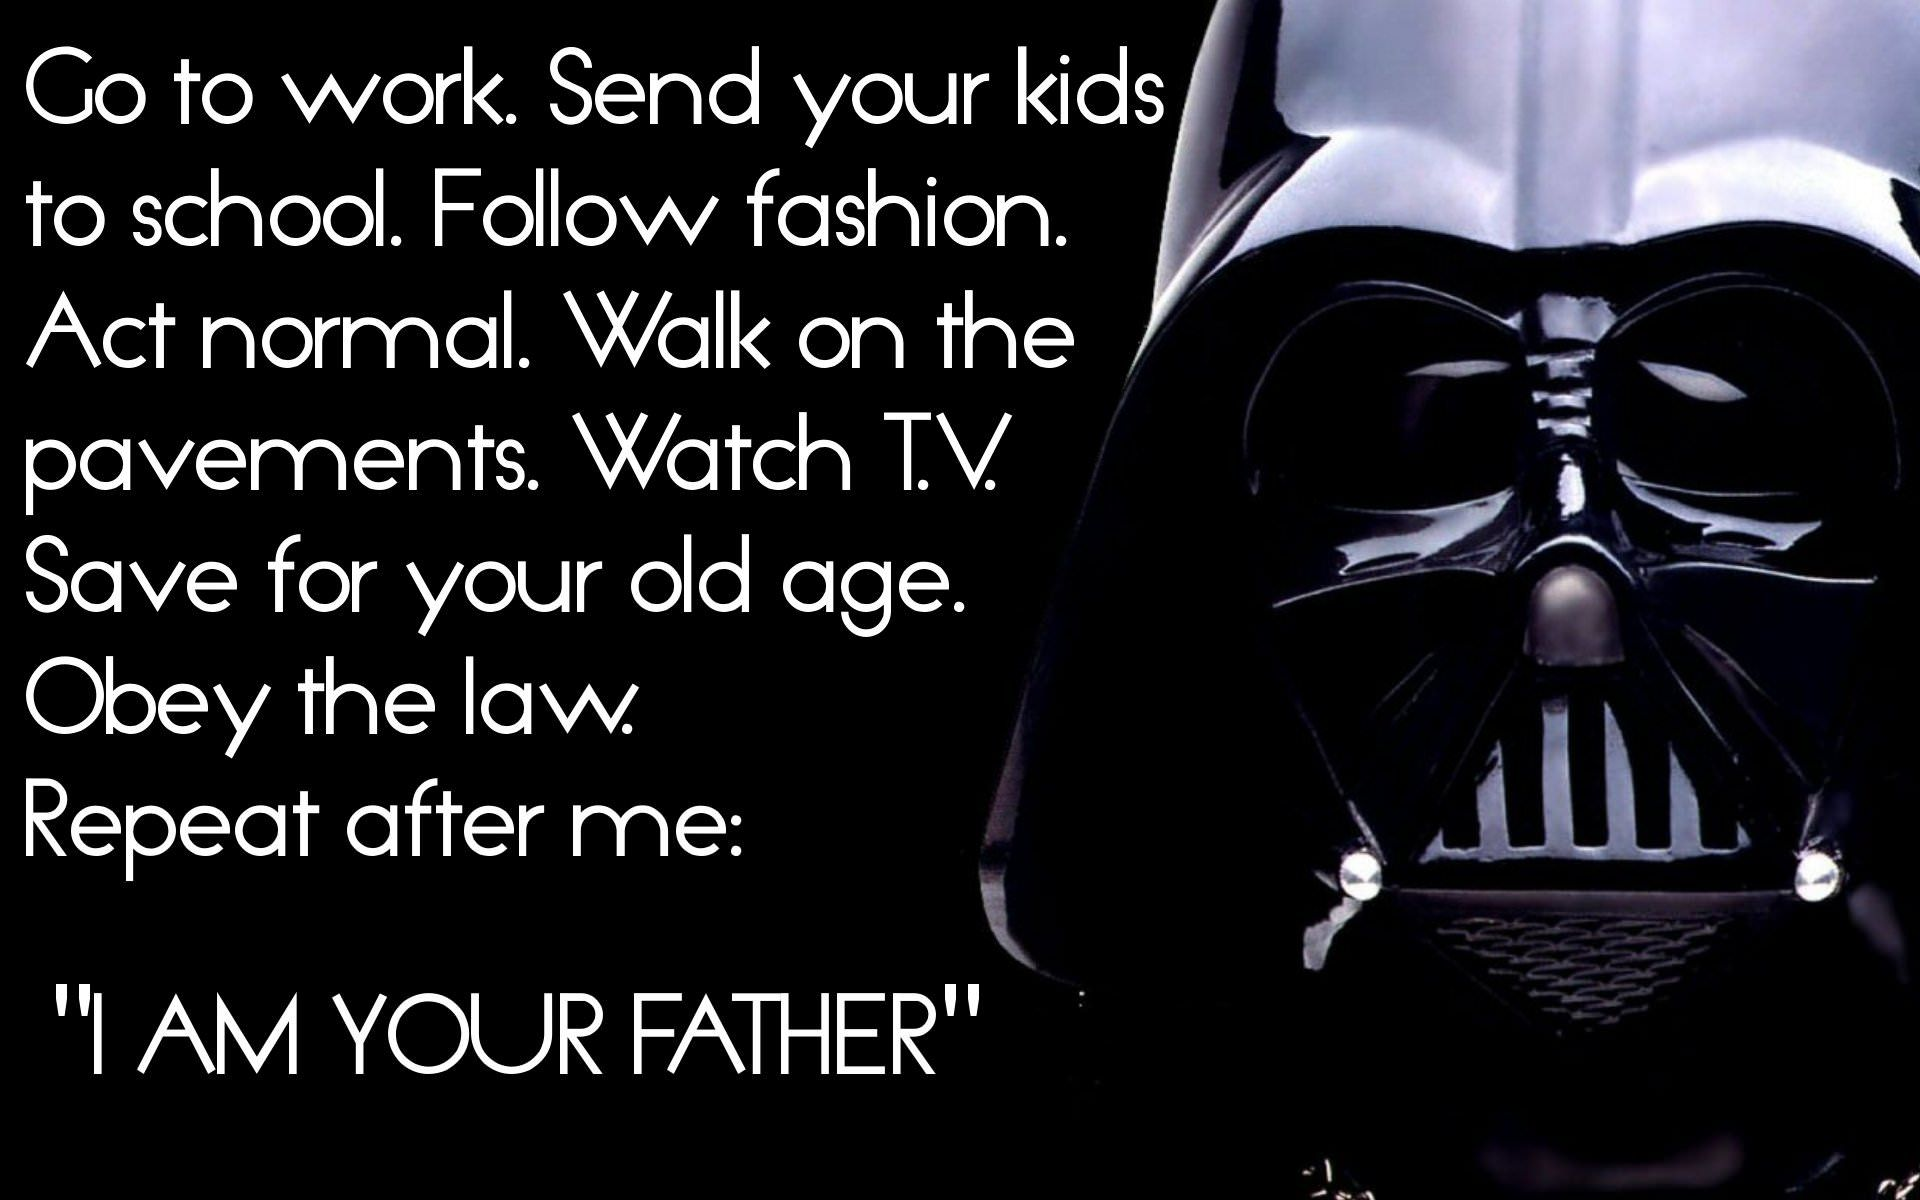 Star Wars Wallpaper Hd You Are The Father Darth Vader Darth Vader Quotes